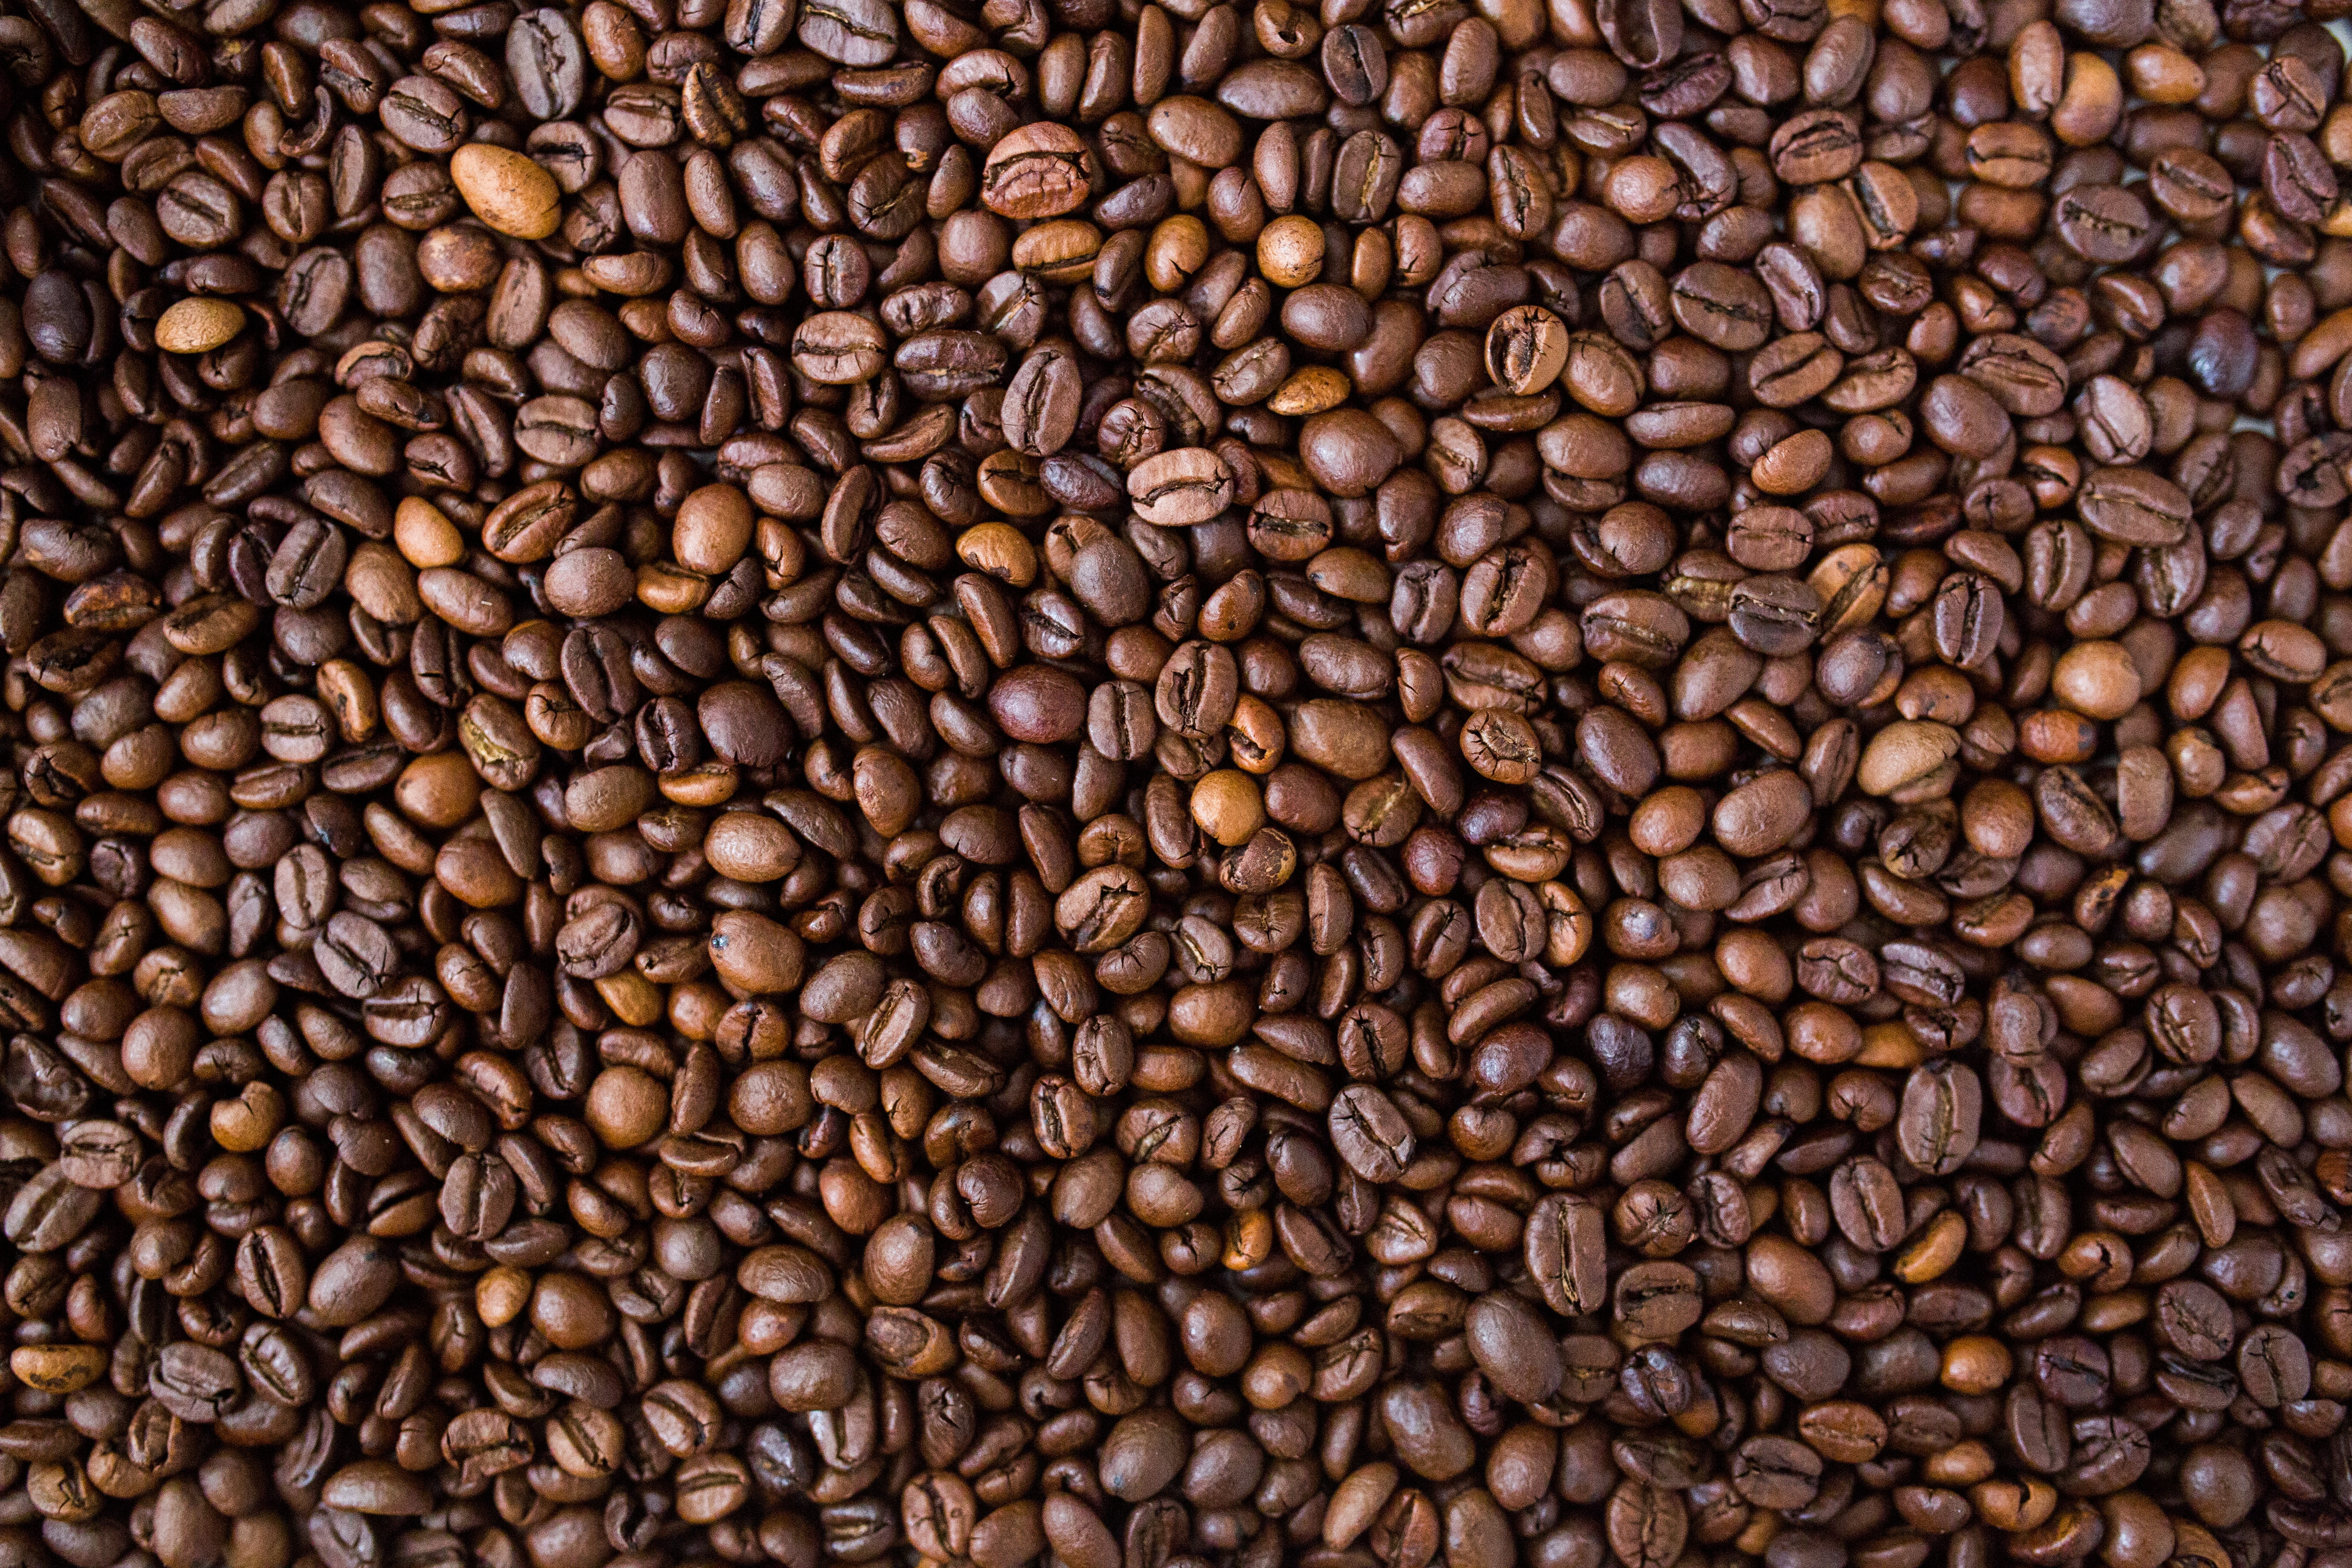 beans-brown-coffee-34085